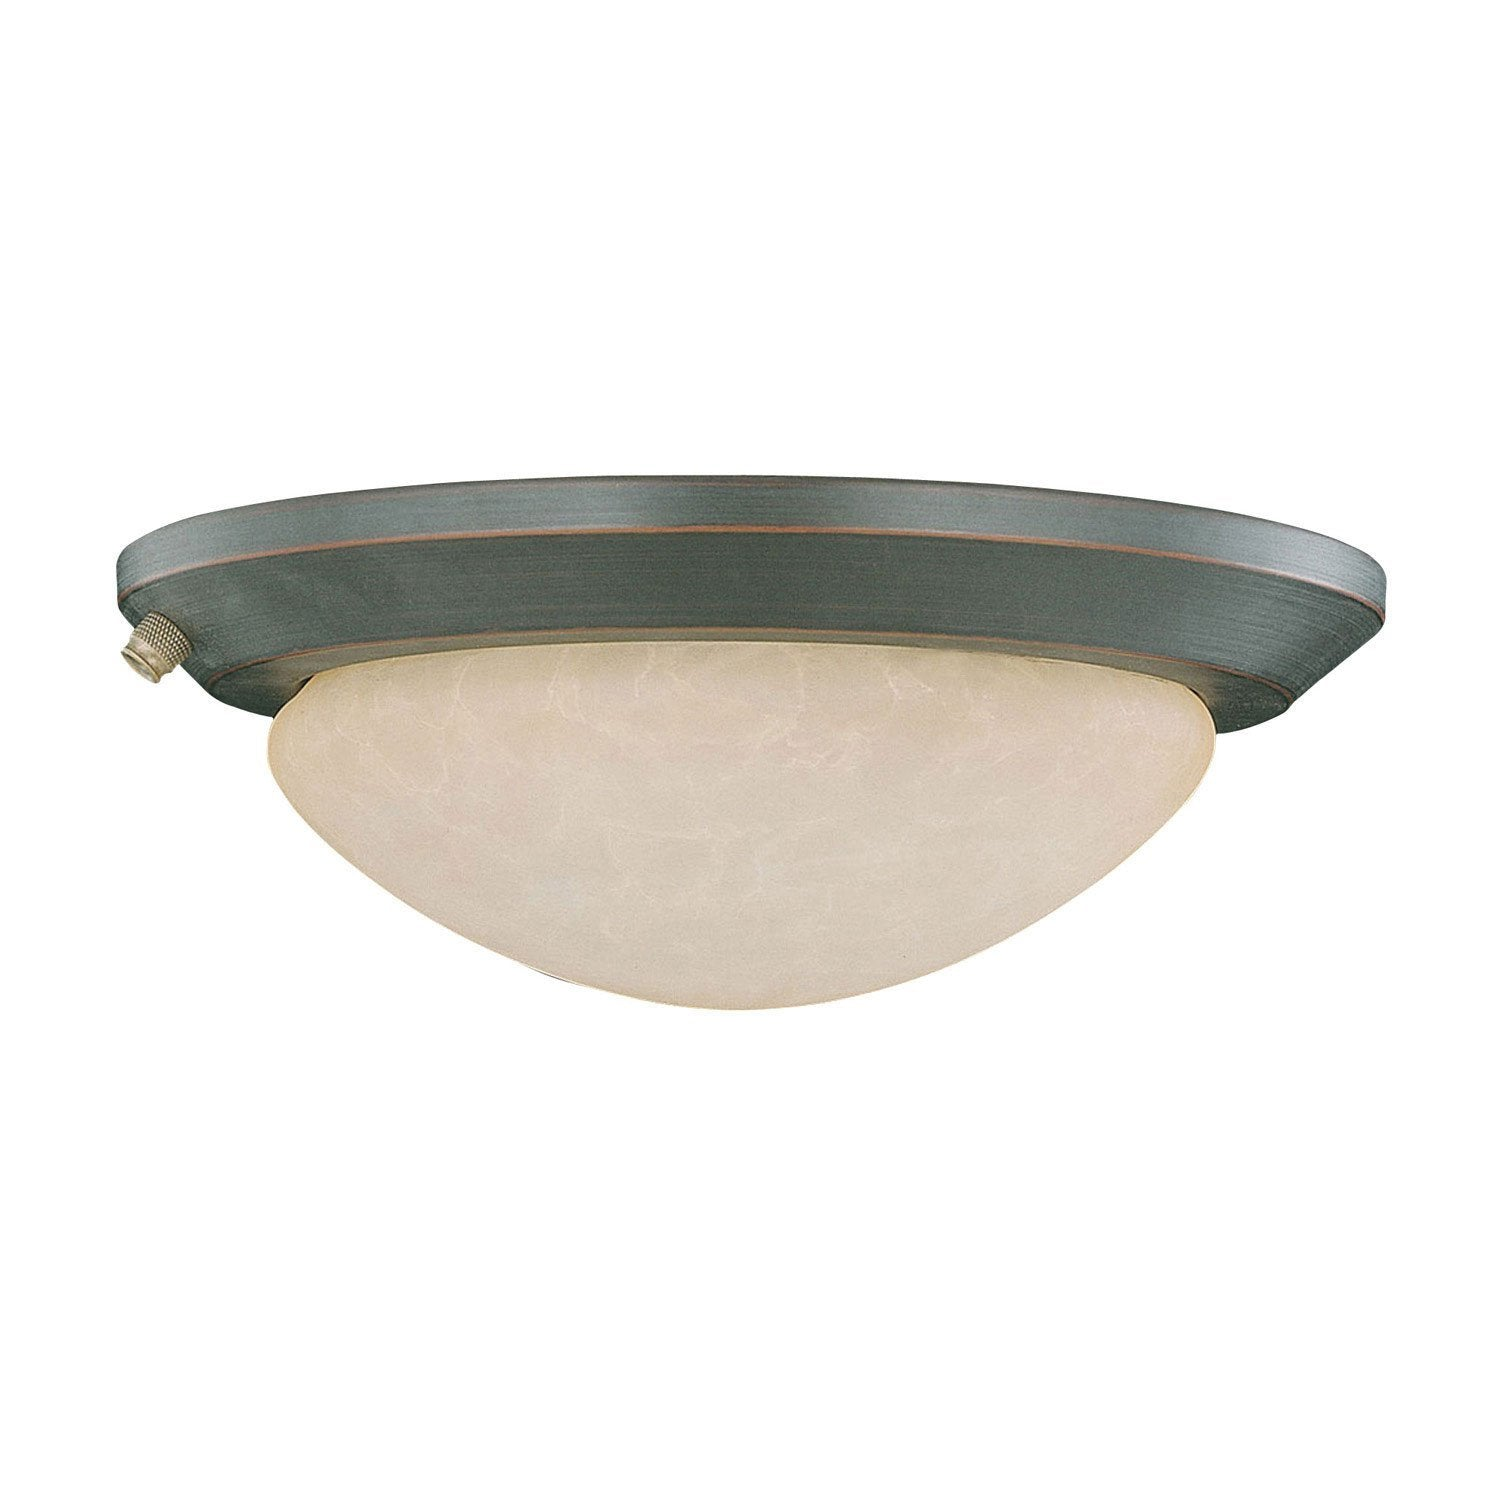 Concord Fans 2 Light Oil Rubbed Bronze Finish Low Profile Ceiling